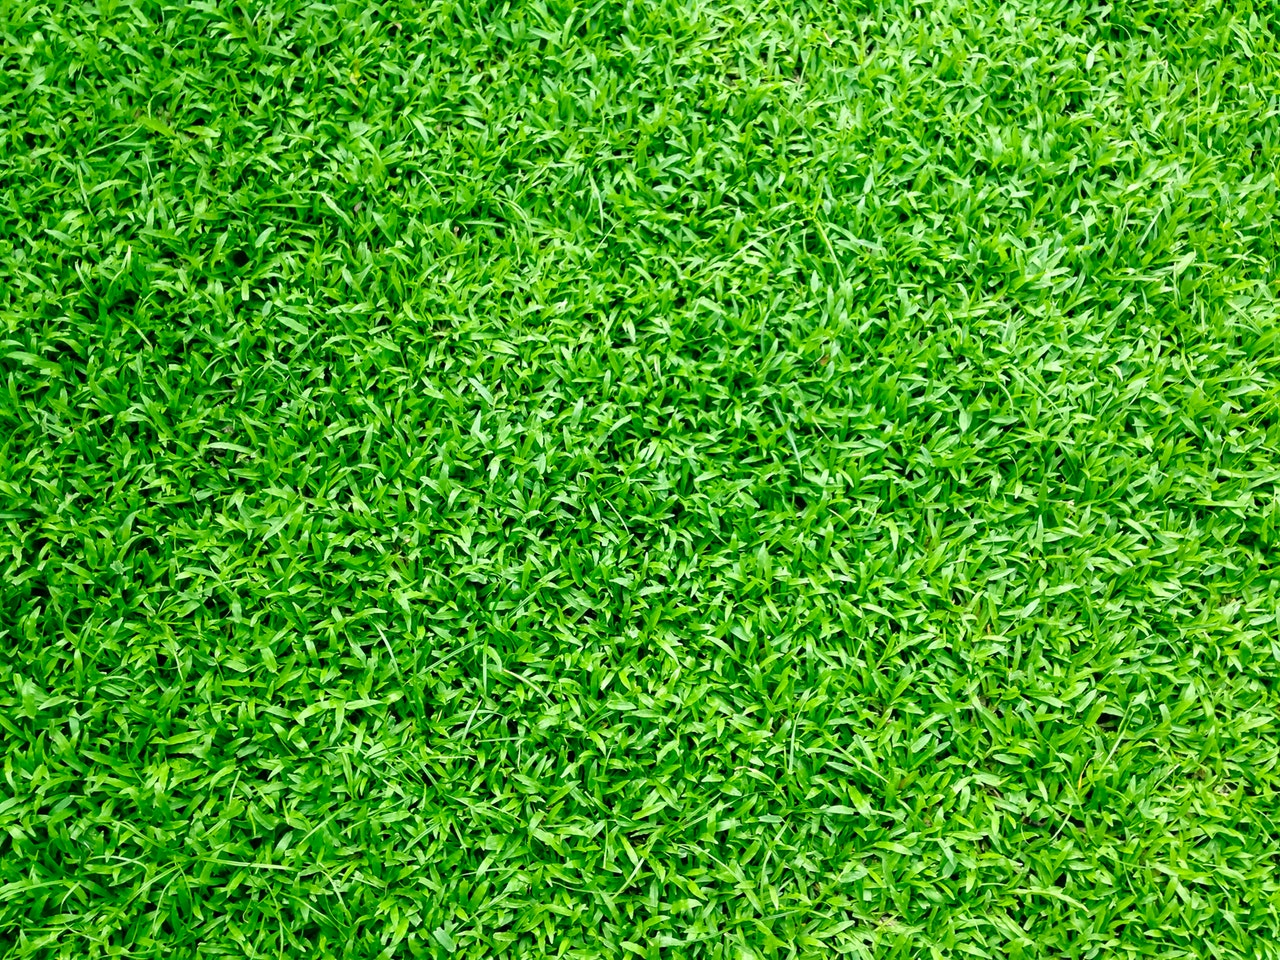 close up of artificial grass